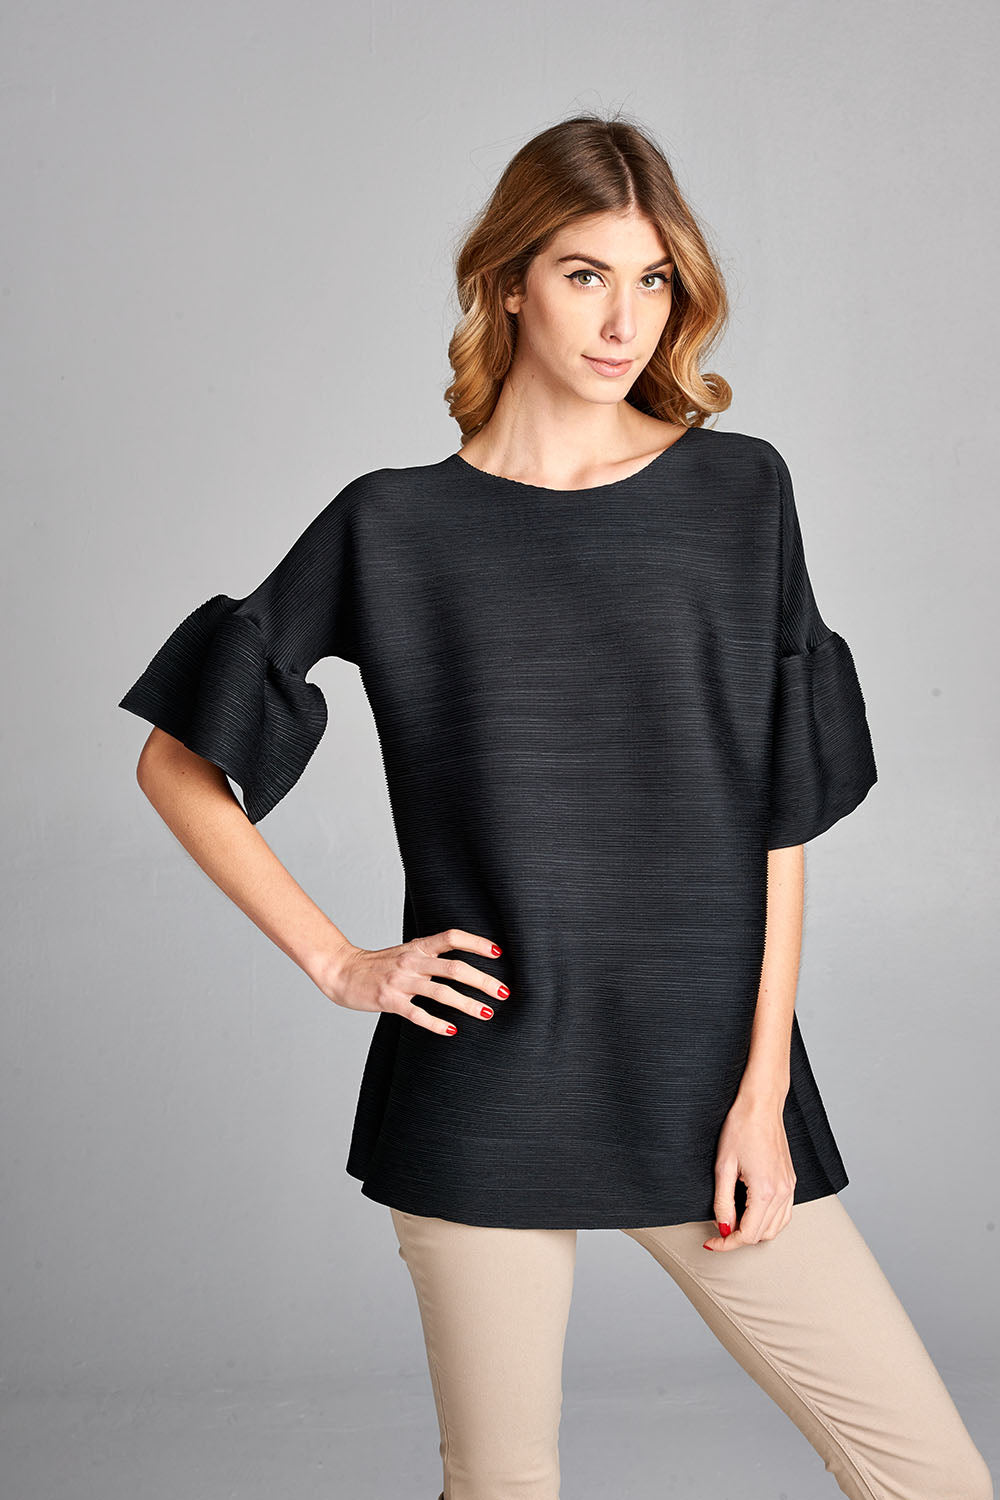 Pleated Black Audrey  Top With Ruffle Sleeve 60422